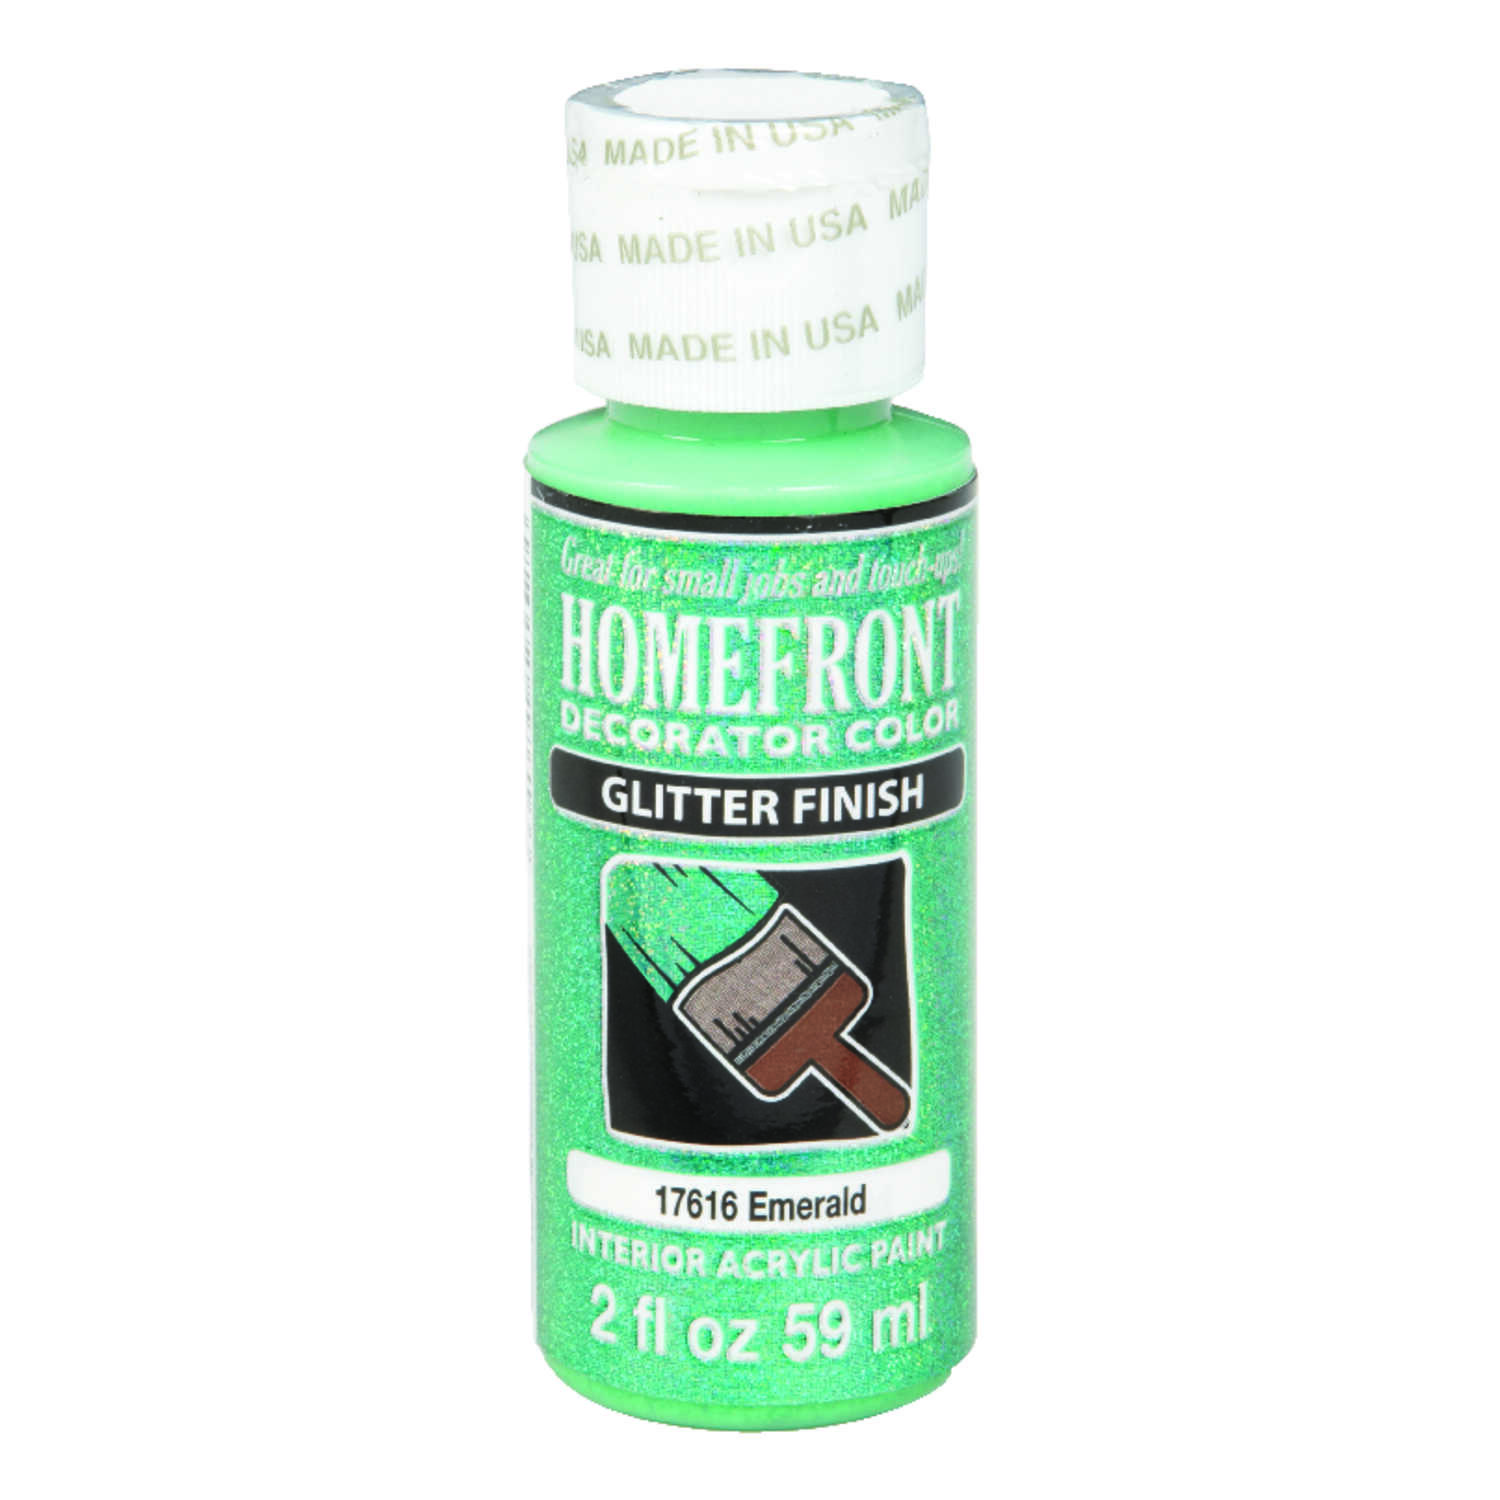 Homefront  Decorator Color  Glitter  Acrylic Latex  Emerald  2 oz. Hobby Paint